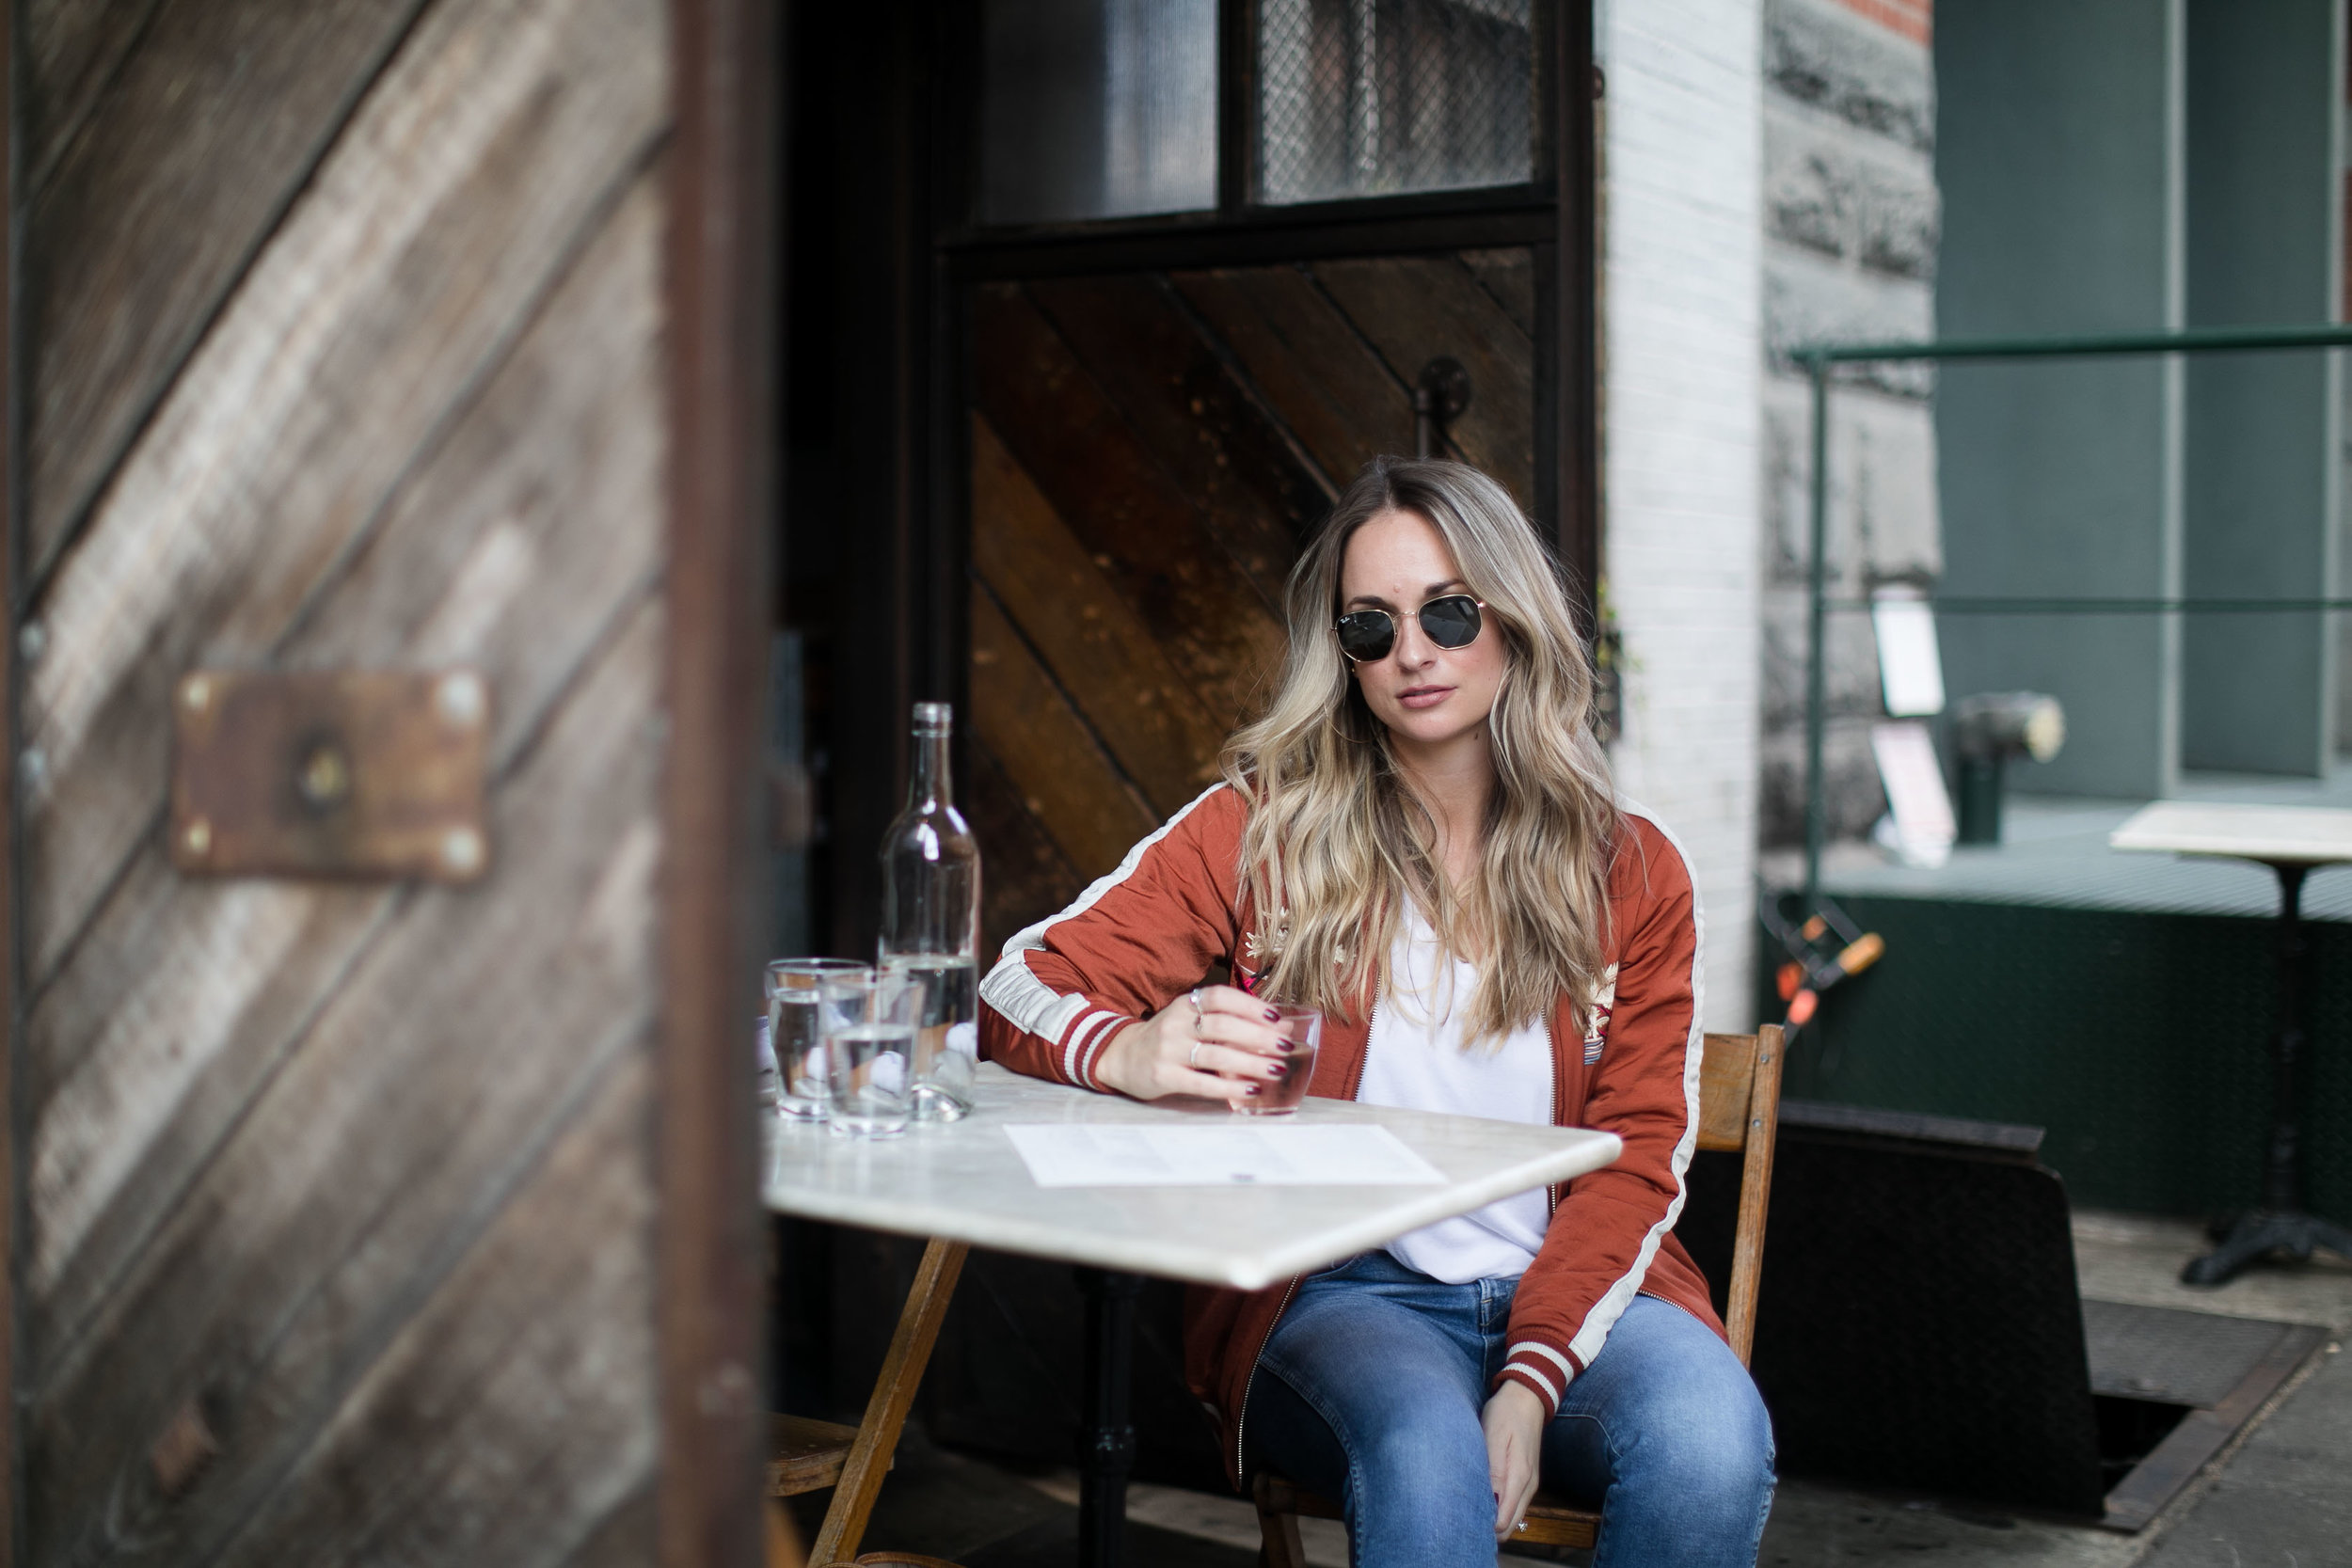 bomber jacket and wine